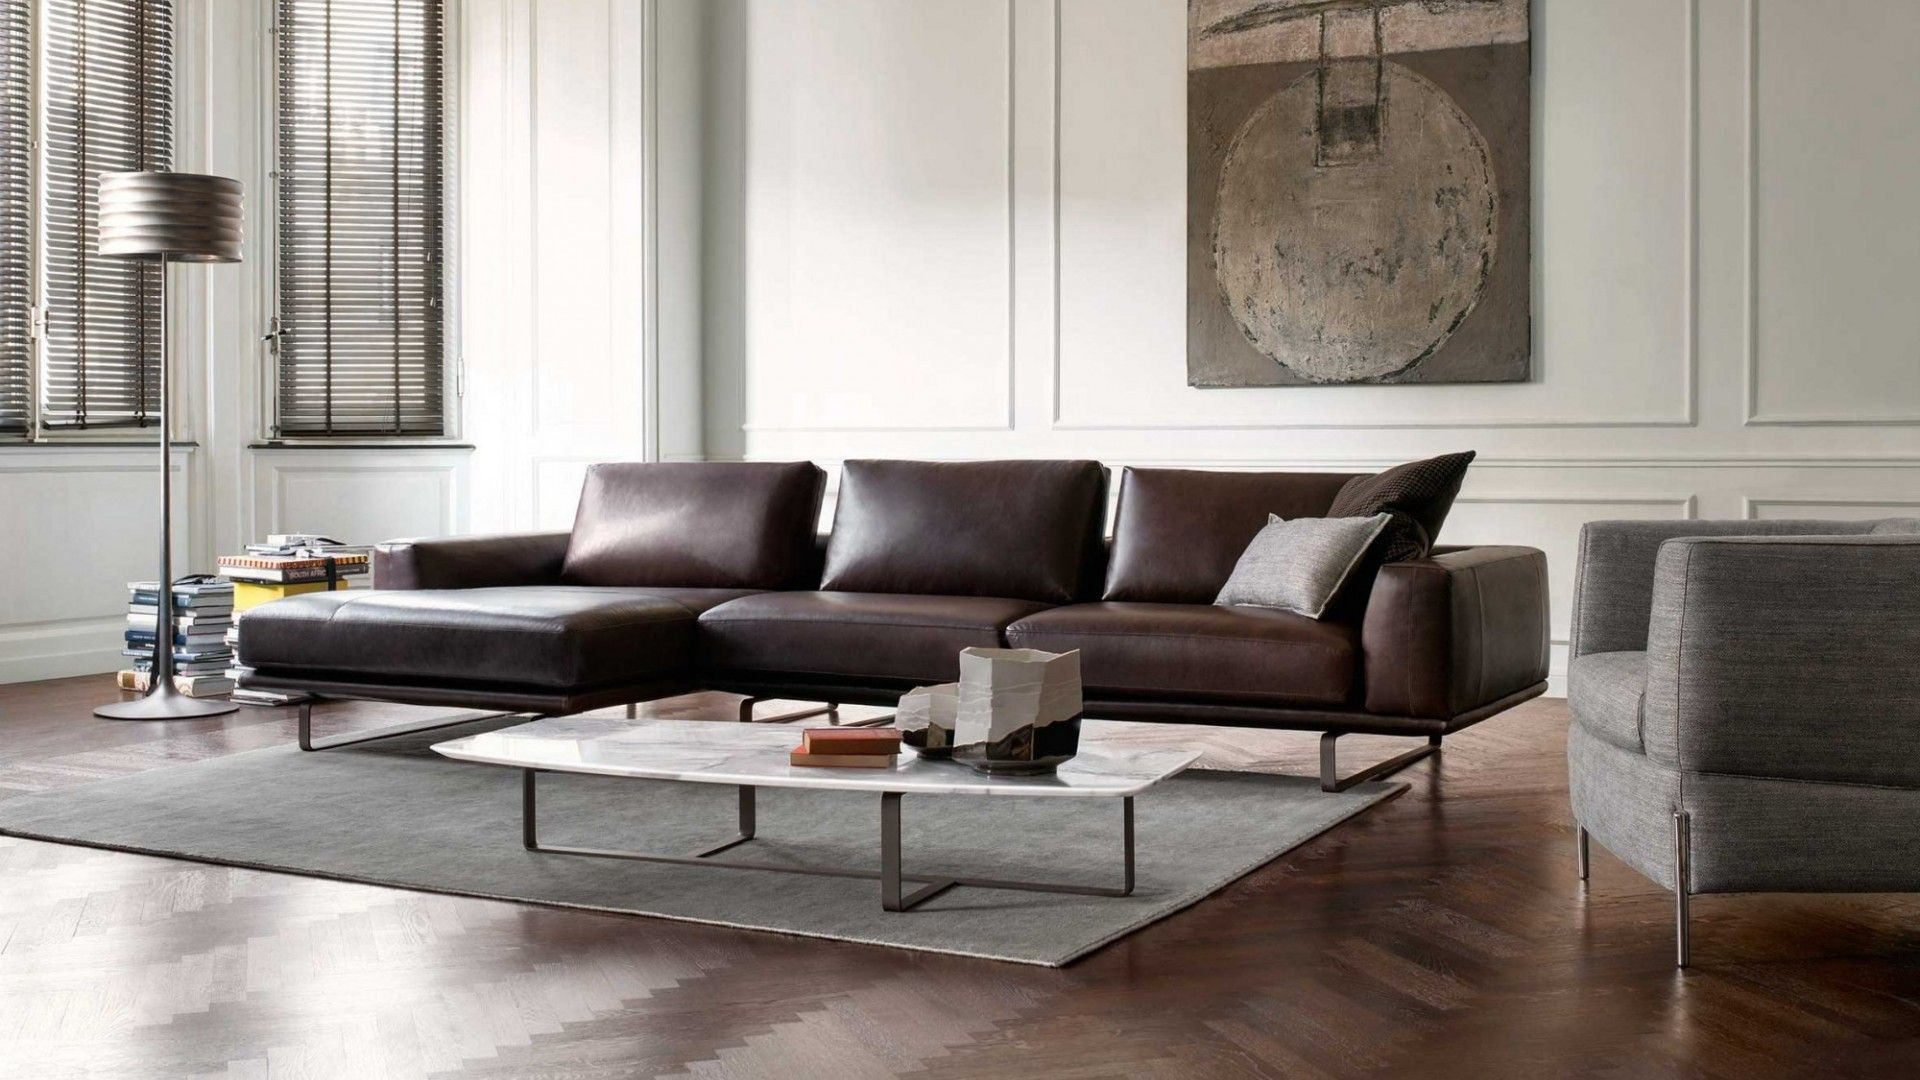 Natuzzi Italia Tempo Leather Sofa Natuzzi Italia Philadelphia 321 Sout Italian Furniture Modern Italian Furniture Design Furniture Design Living Room Sofas